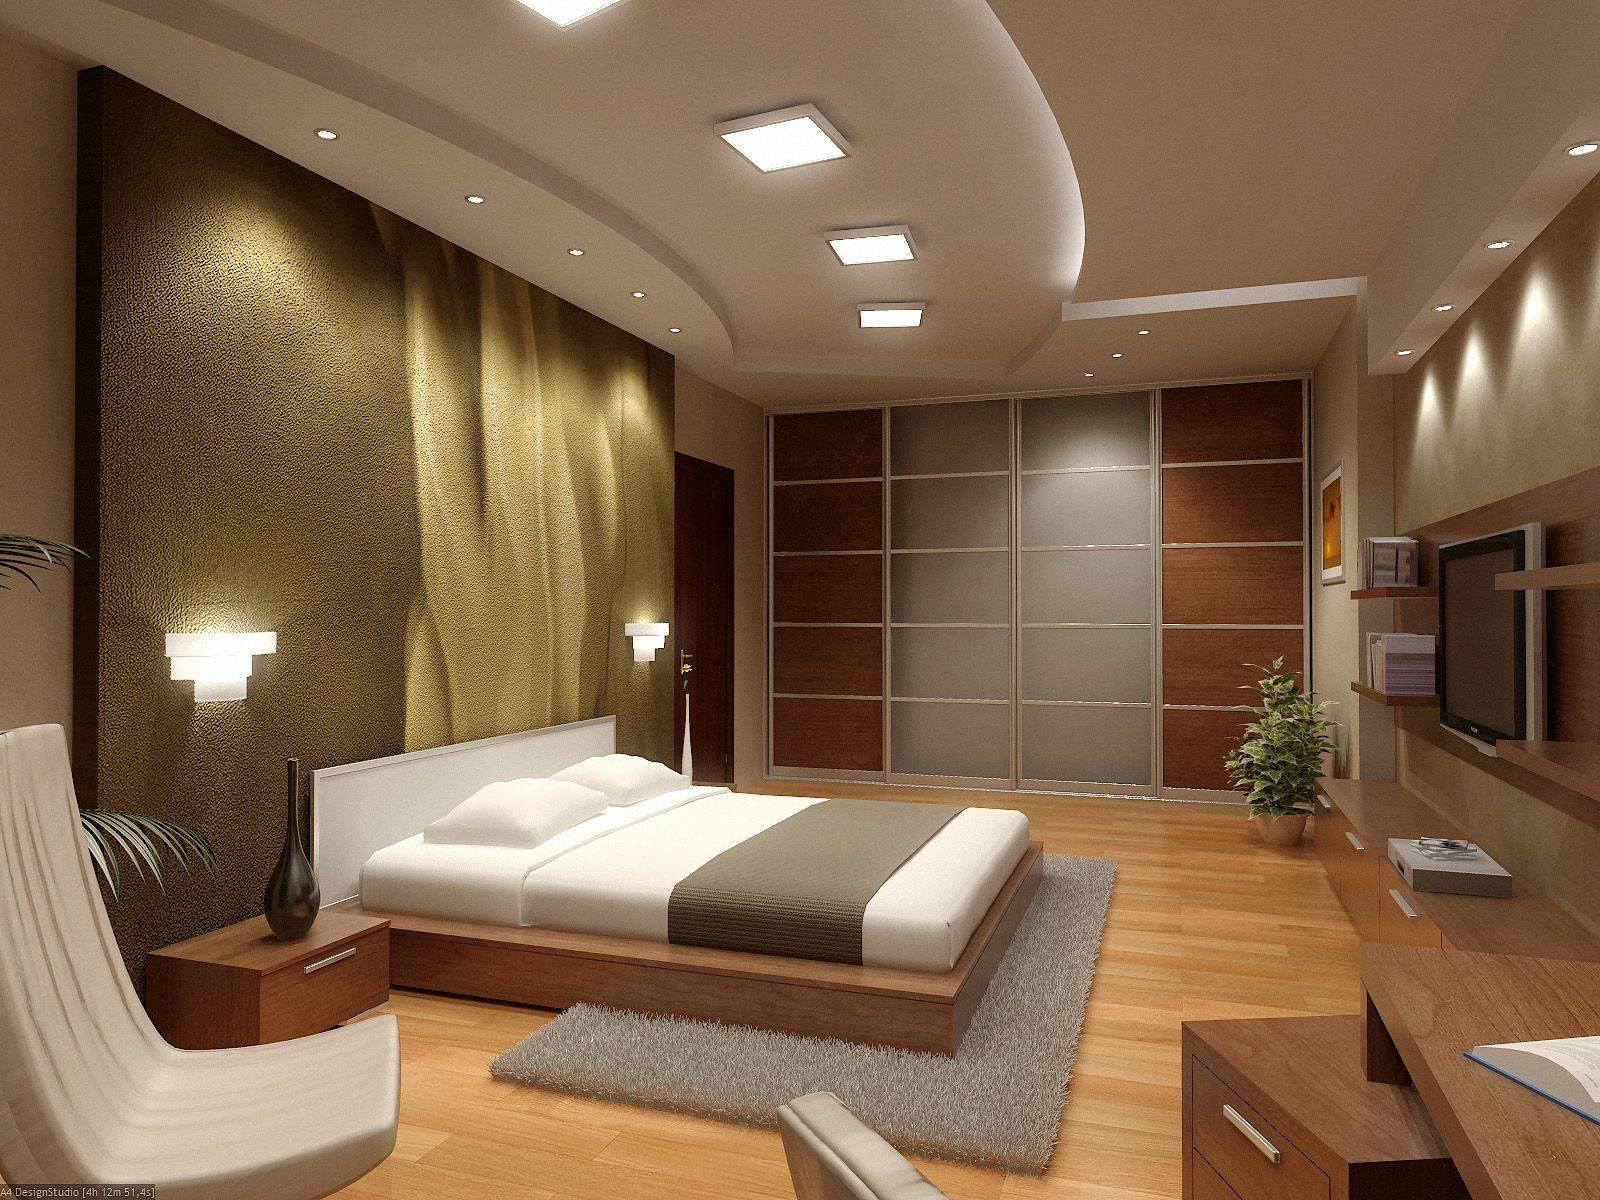 New Home Designs Latest Modern Homes Luxury Interior Designing Ideas House Plans 39929